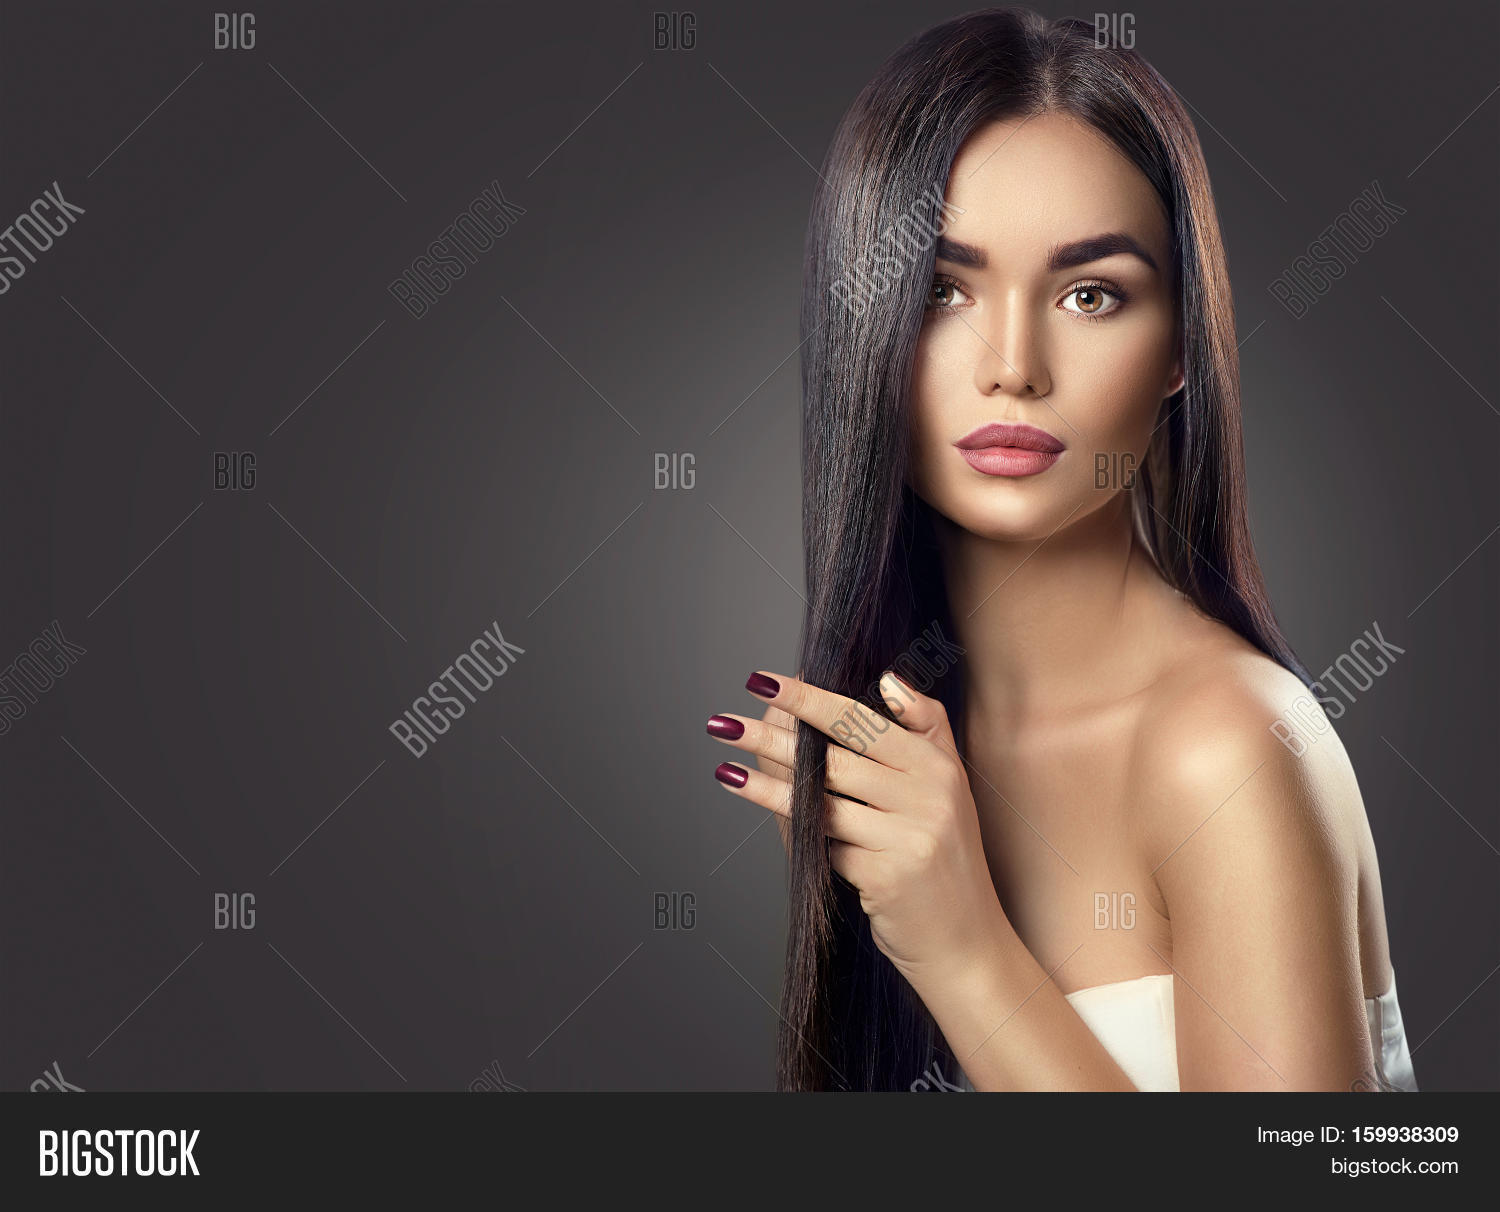 Beautiful Long Hair. Image & Photo (Free Trial)